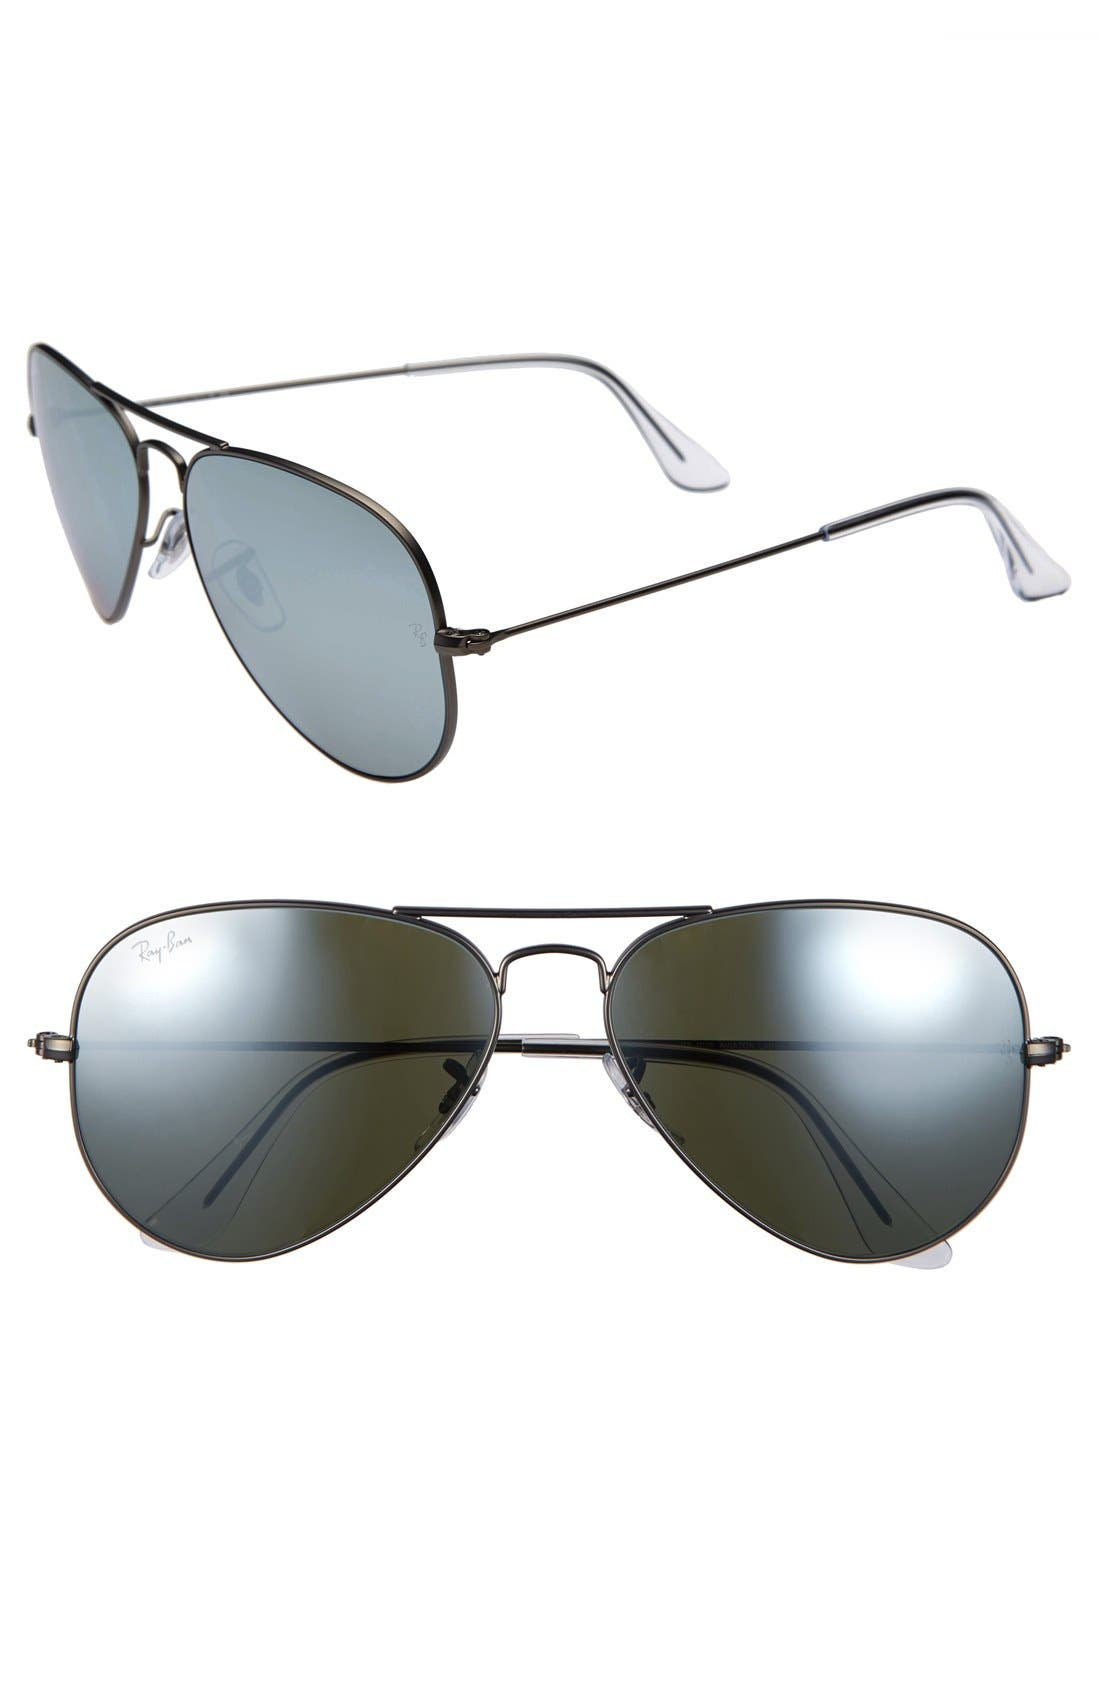 ray ban original aviator 58mm sunglasses